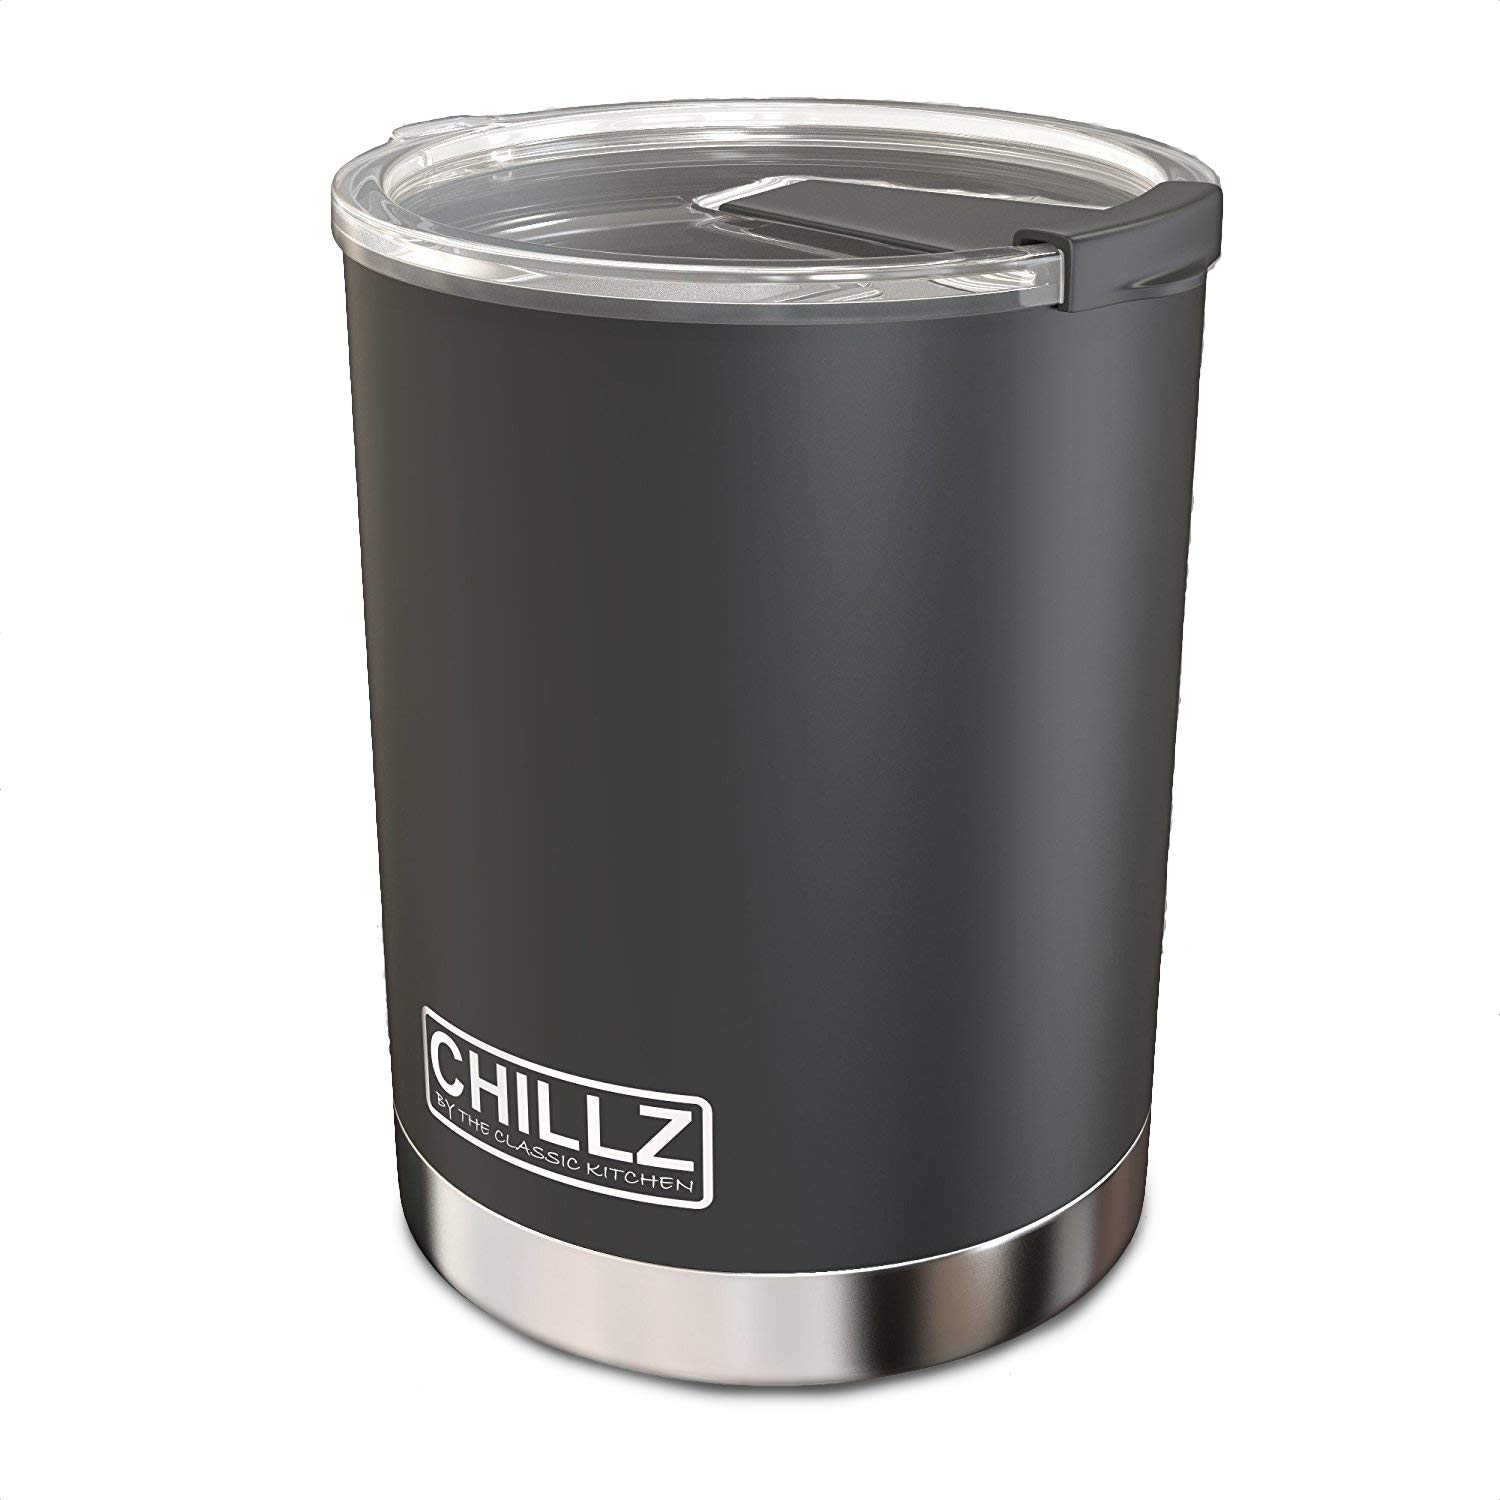 Chillz Stainless Steel Vacuum Insulated Tumbler with Spill Proof Lid - 10 oz - Black